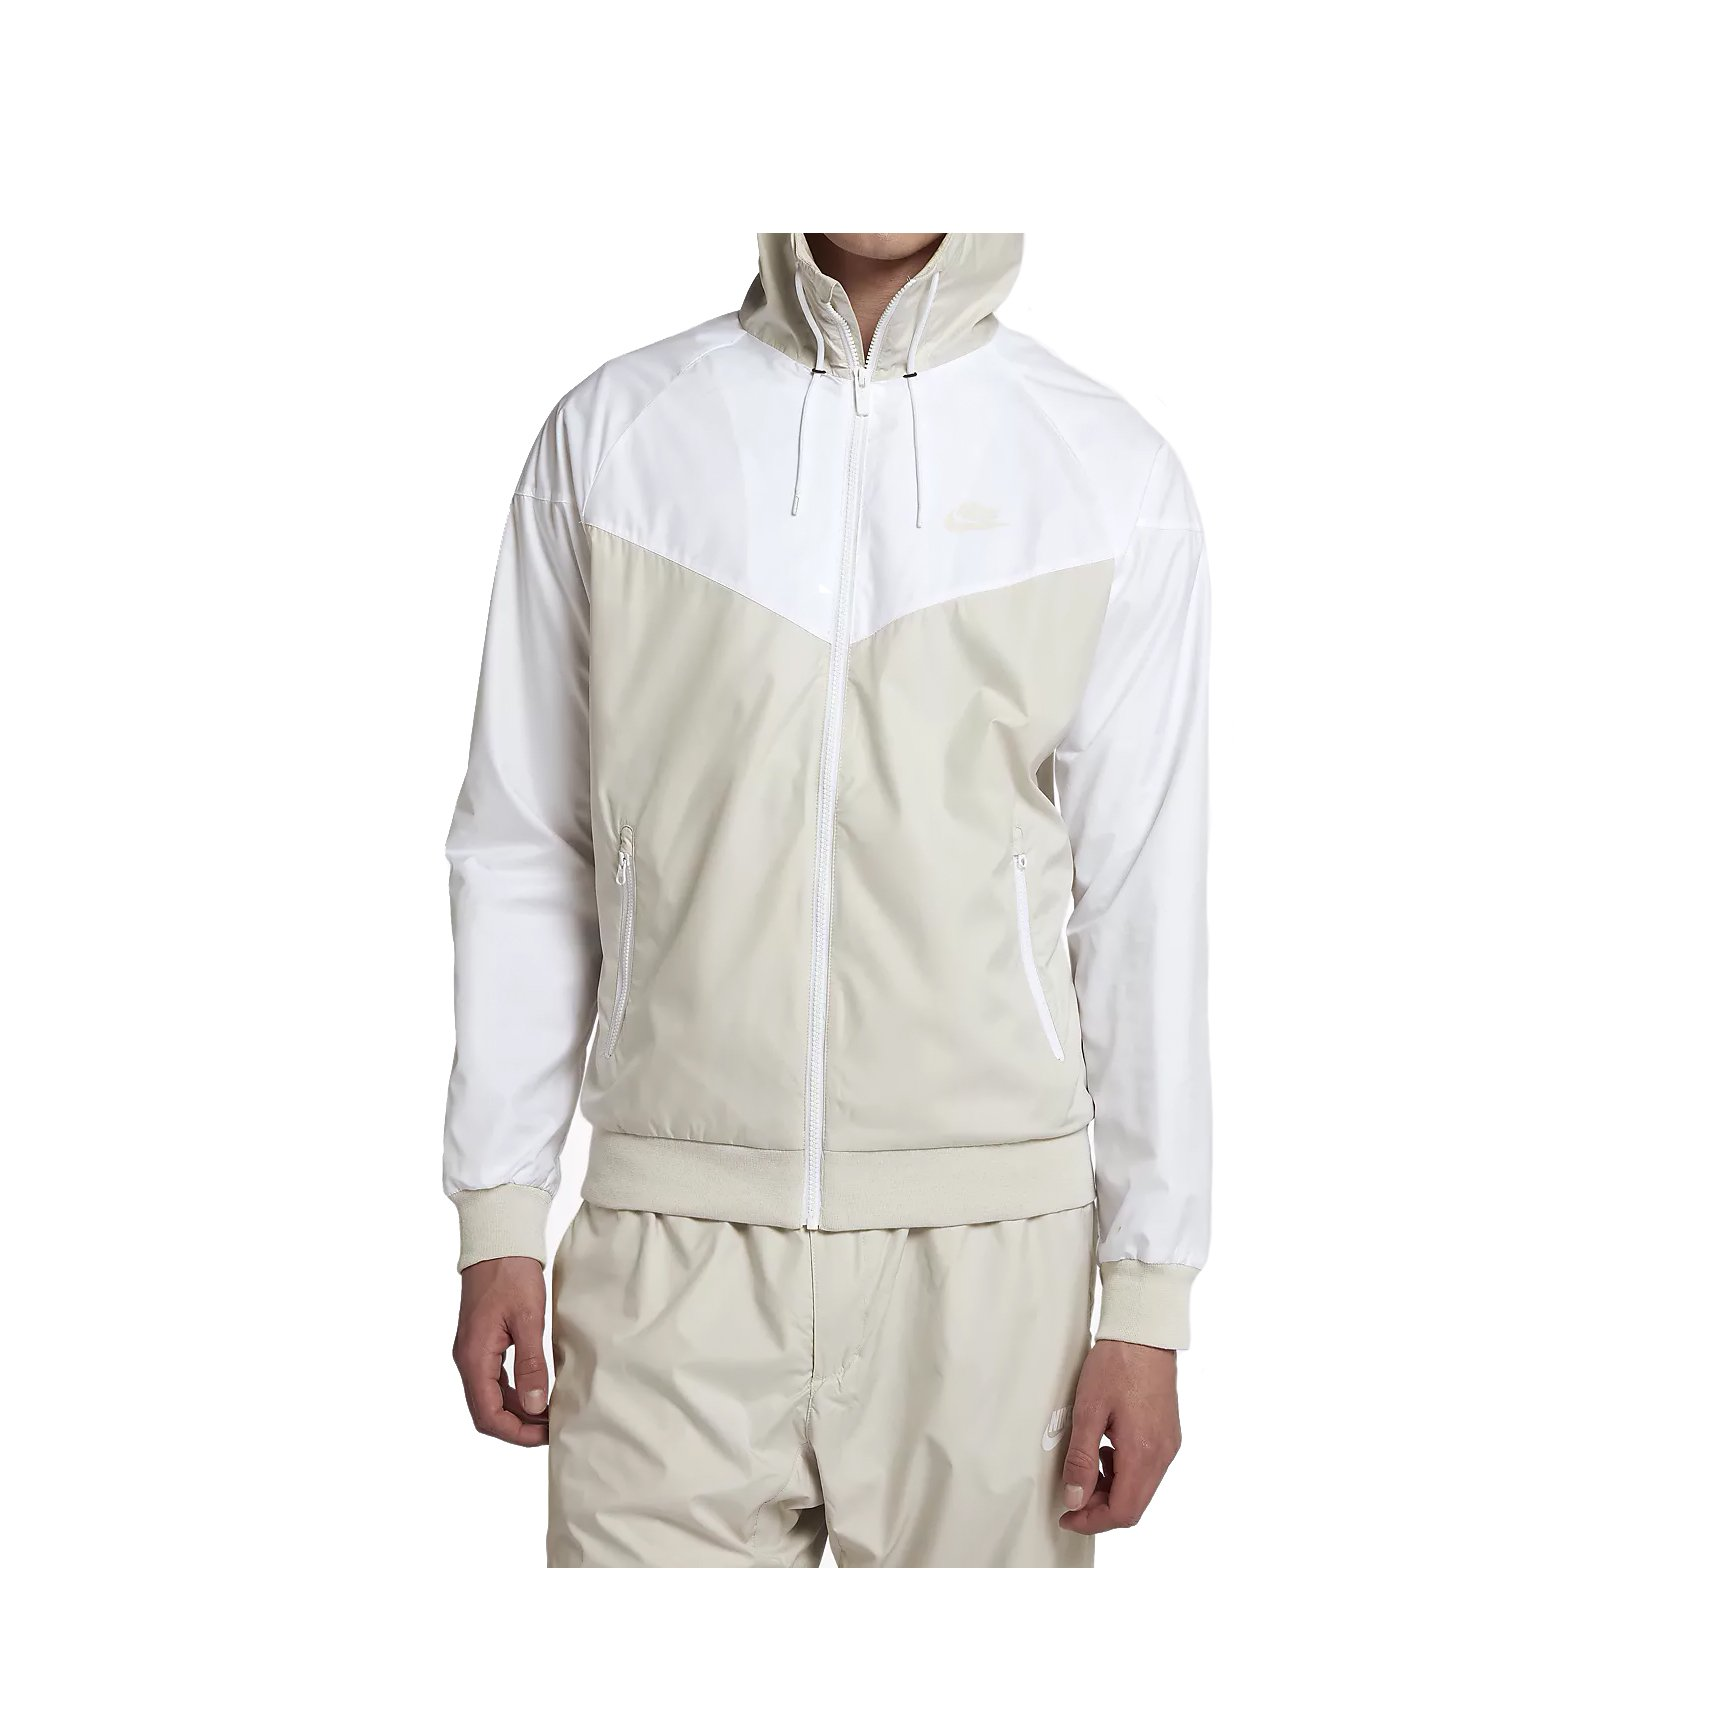 465c55b80838 Galleon - NIKE Mens Windrunner Hooded Track Jacket Light Bone White  727324-073 Size Large